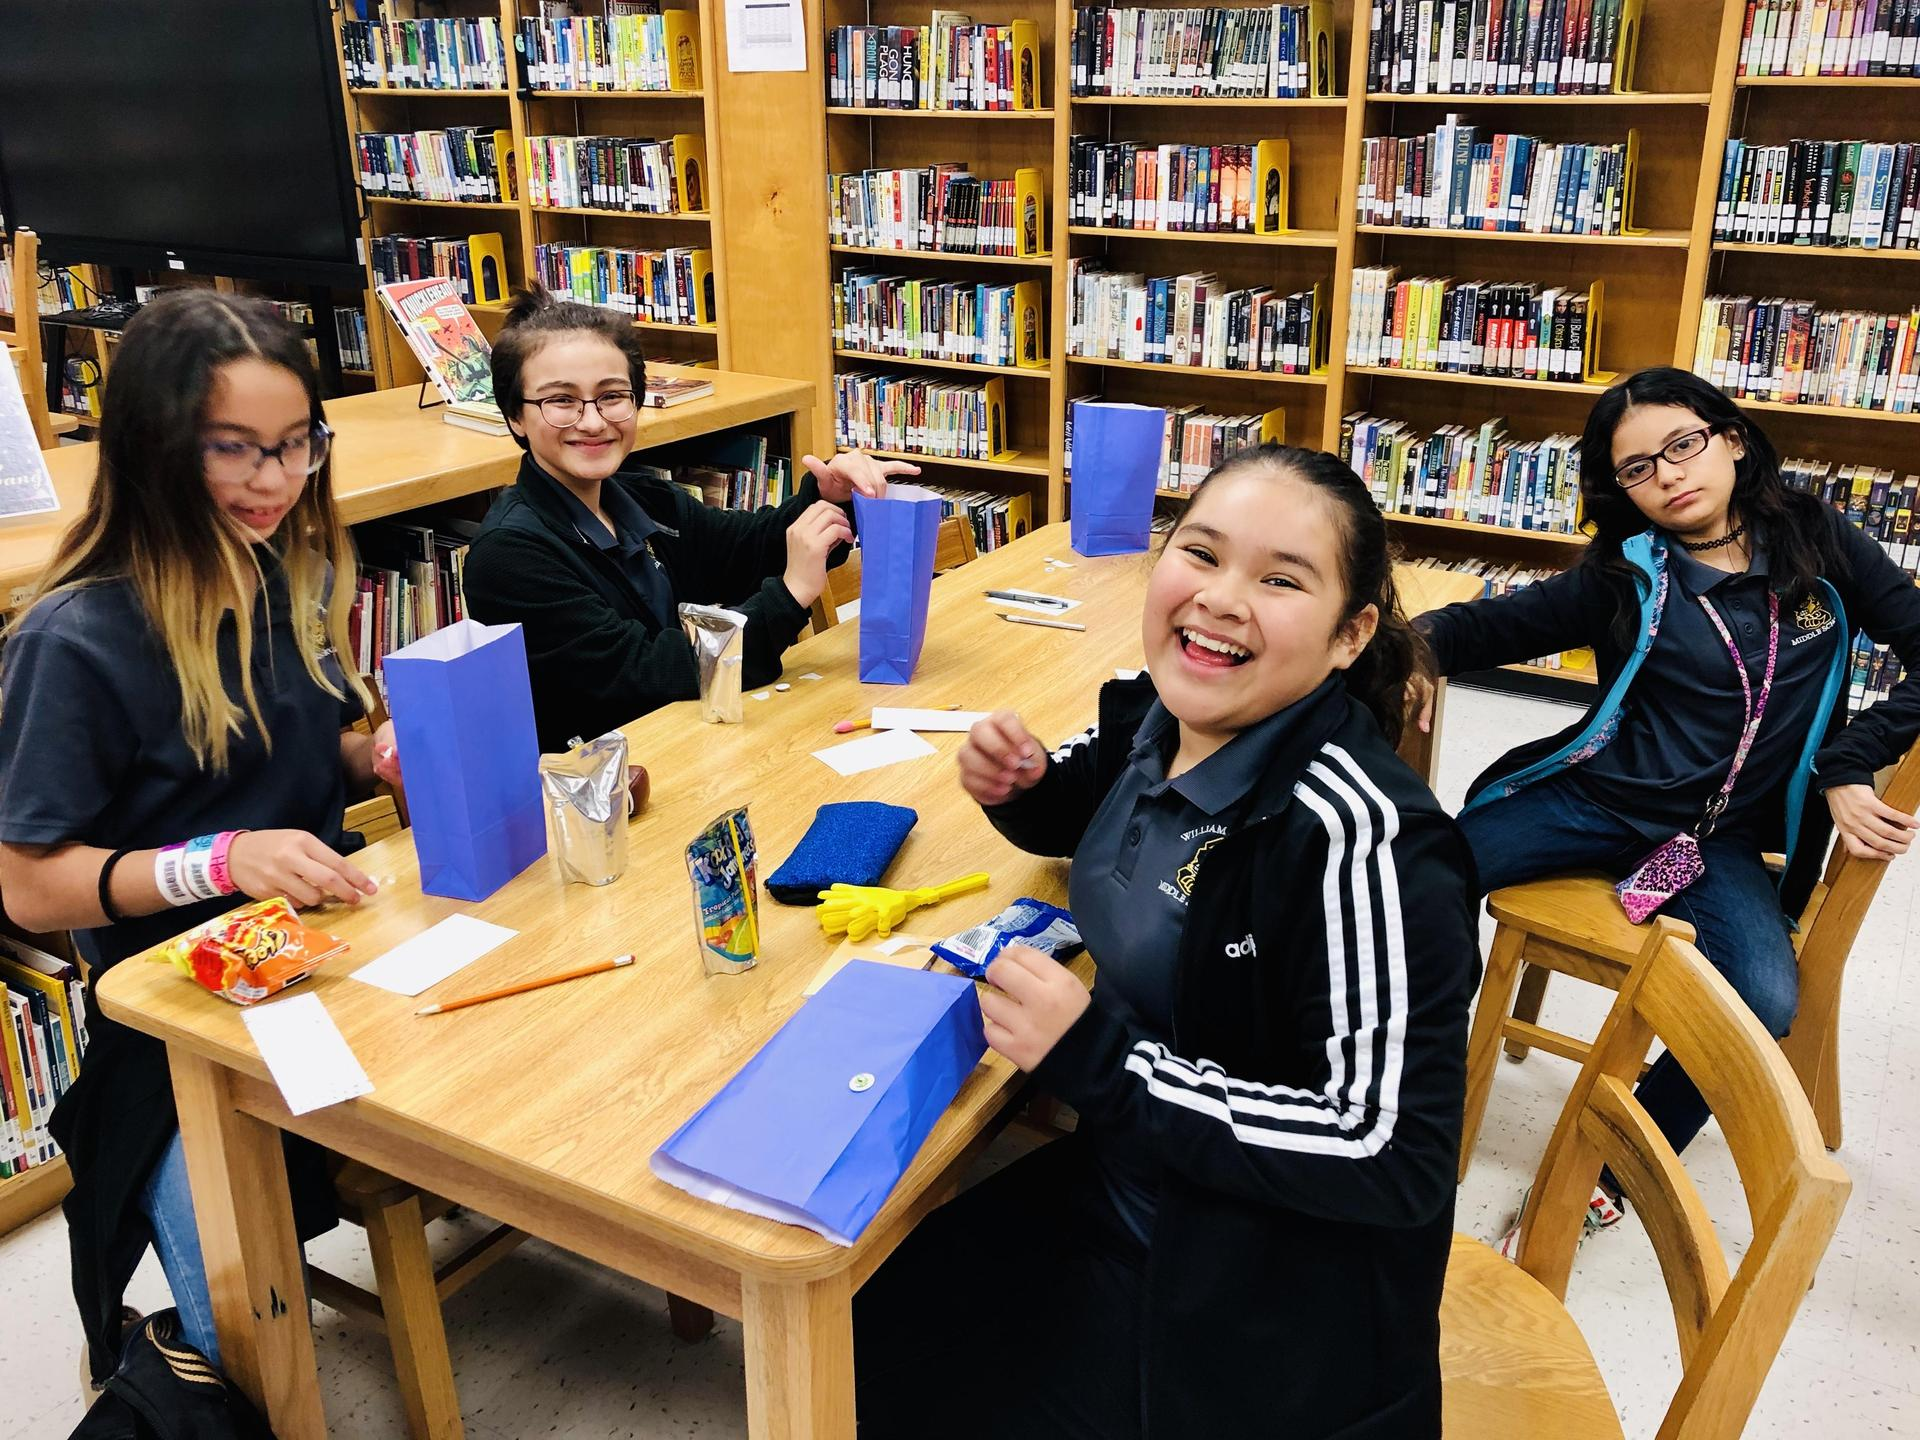 Students pose in the library.